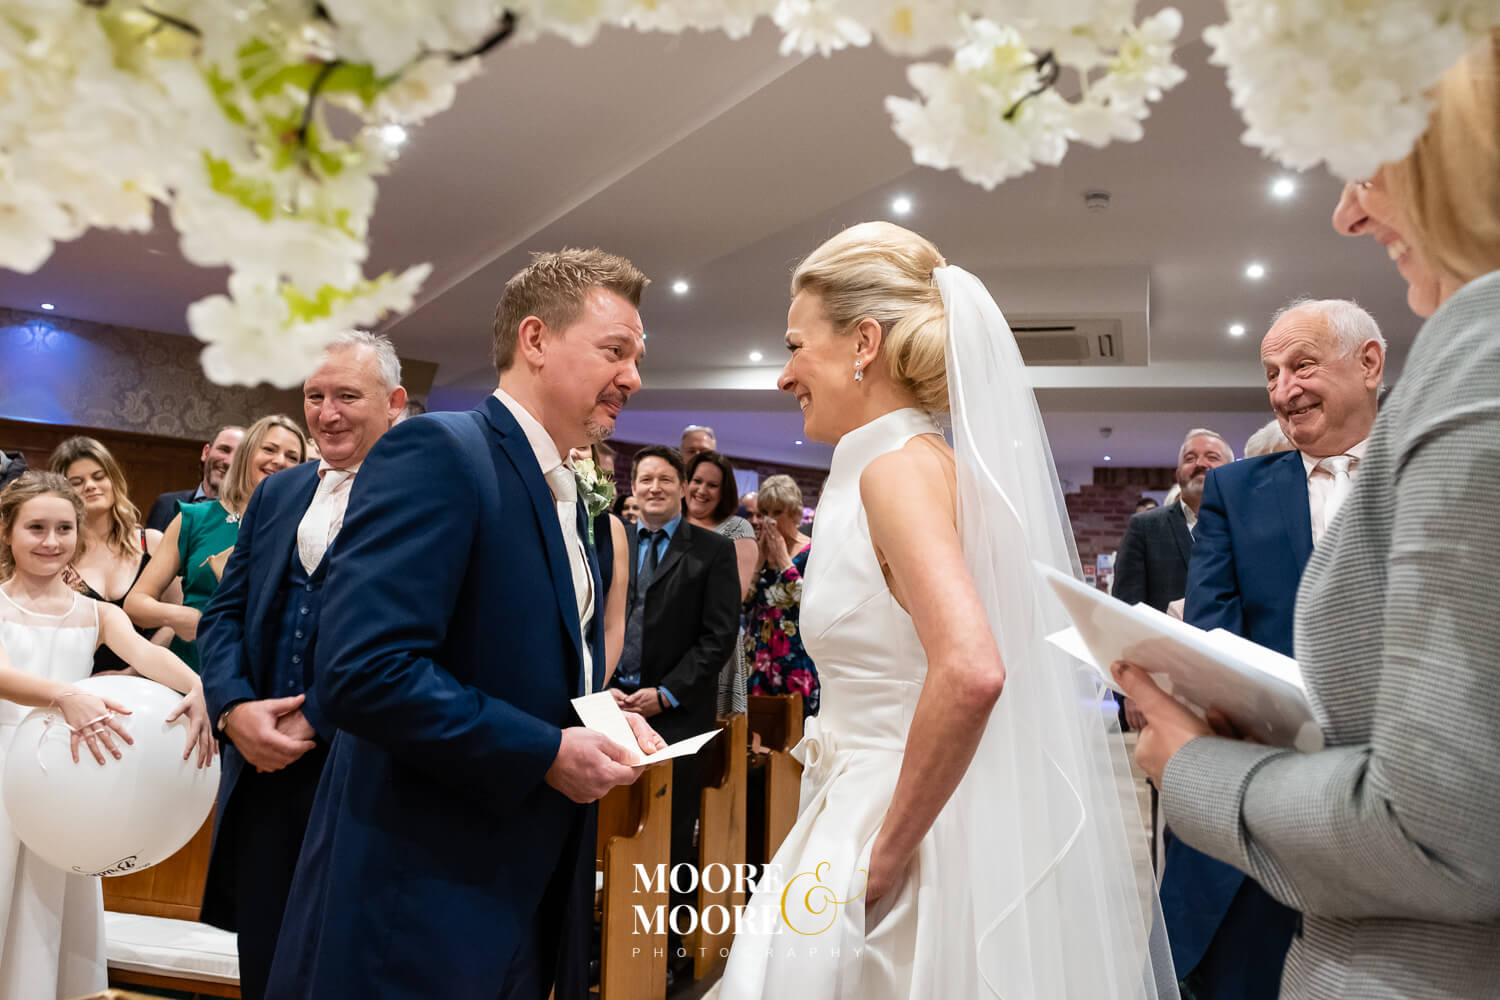 Bride and Groom personal vows. Wedding Photos by Moore & Moore Photography, Hampshire